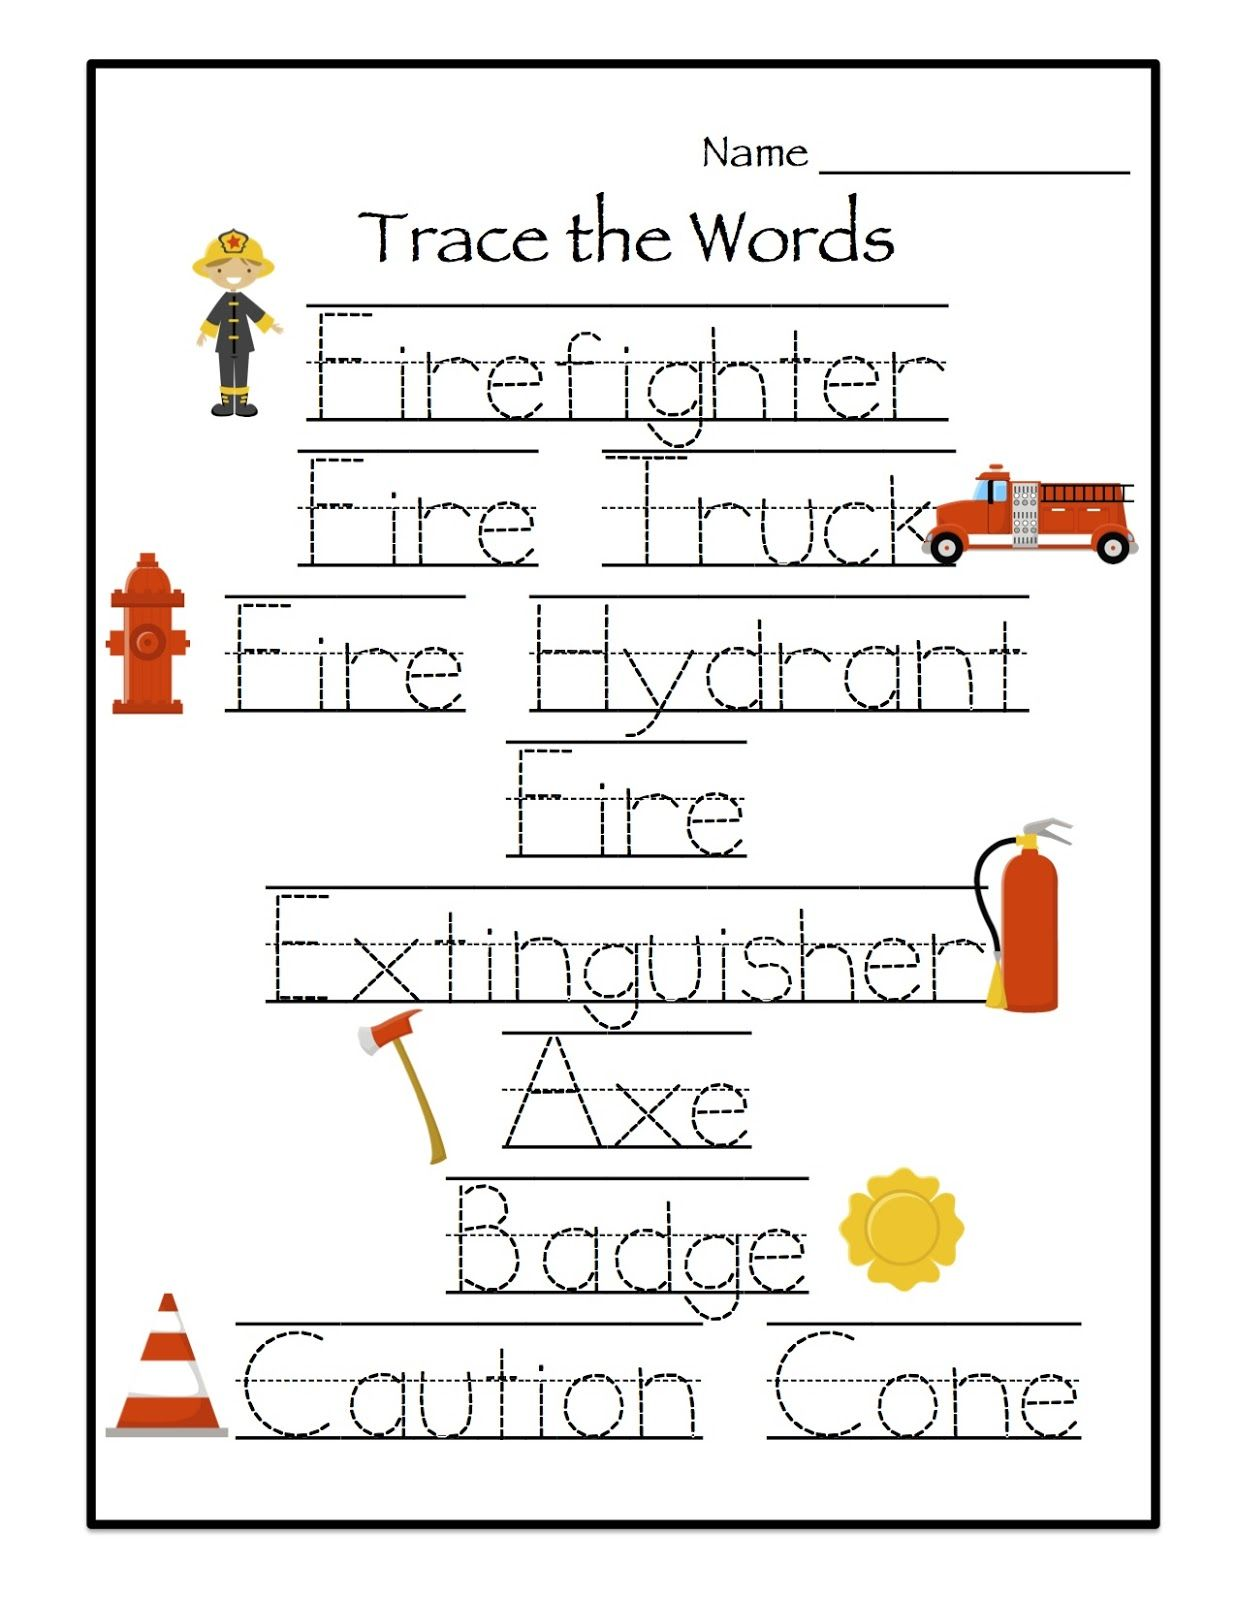 Preschool Printables Fire Safety Fire Safety Lesson Plans Fire Safety Fire Safety Lessons [ 1600 x 1236 Pixel ]